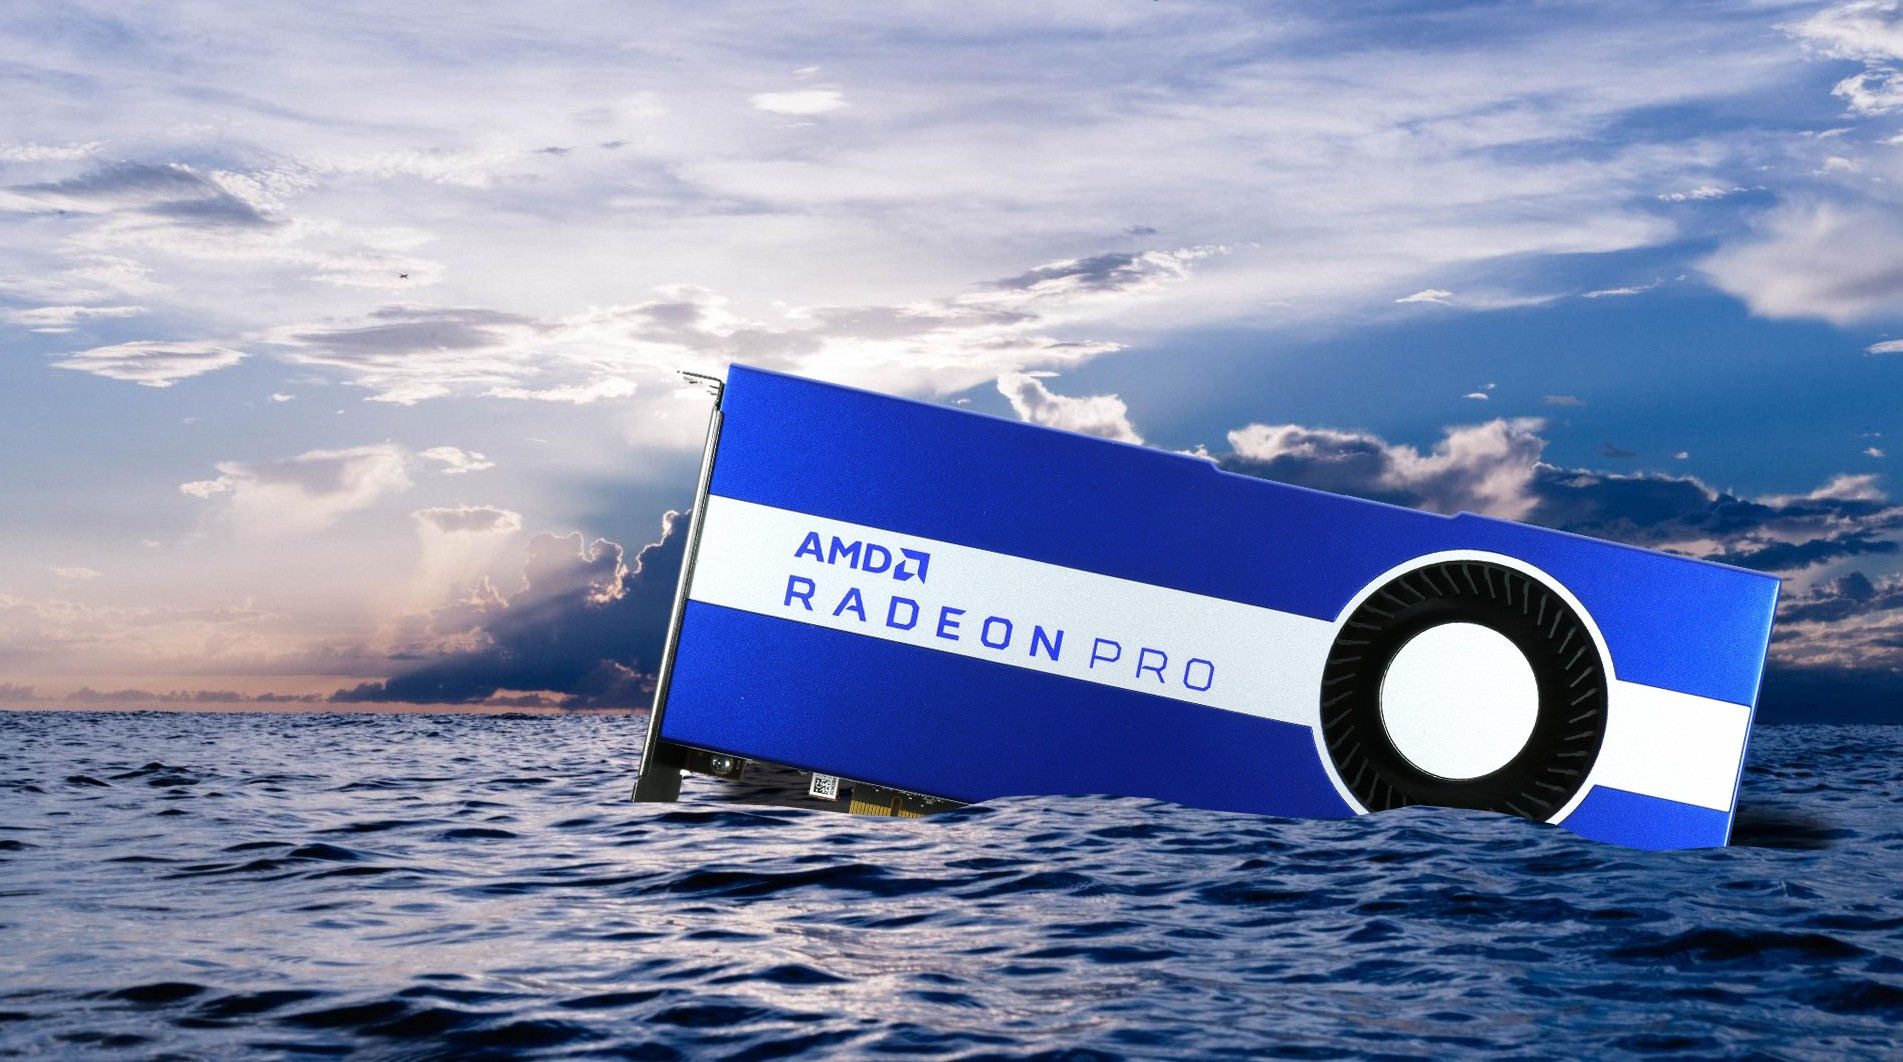 AMD Radeon Pro W5700 water-cooled and overclocked - the reasonable meets the impossible, high spirits and blasphemy